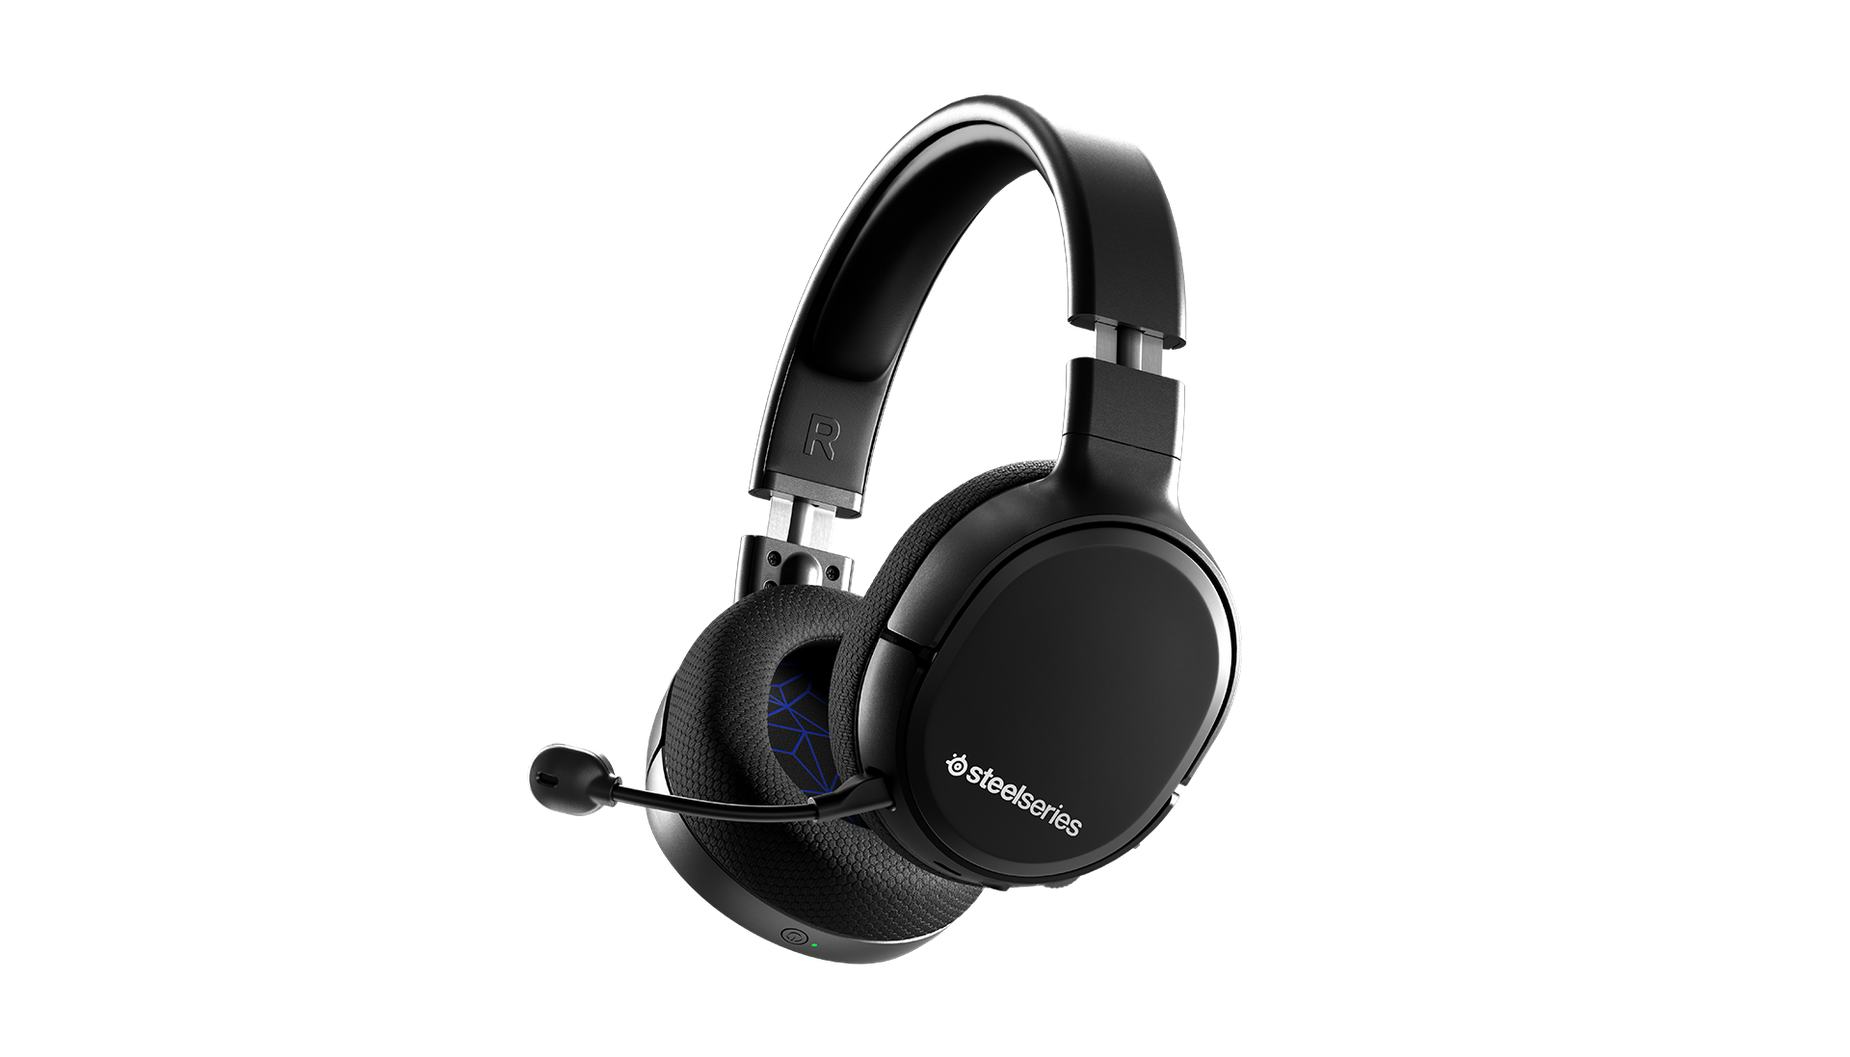 Vue de biais du casque audio de gaming Arctis 1 Wireless pour PS4 avec le micro attaché